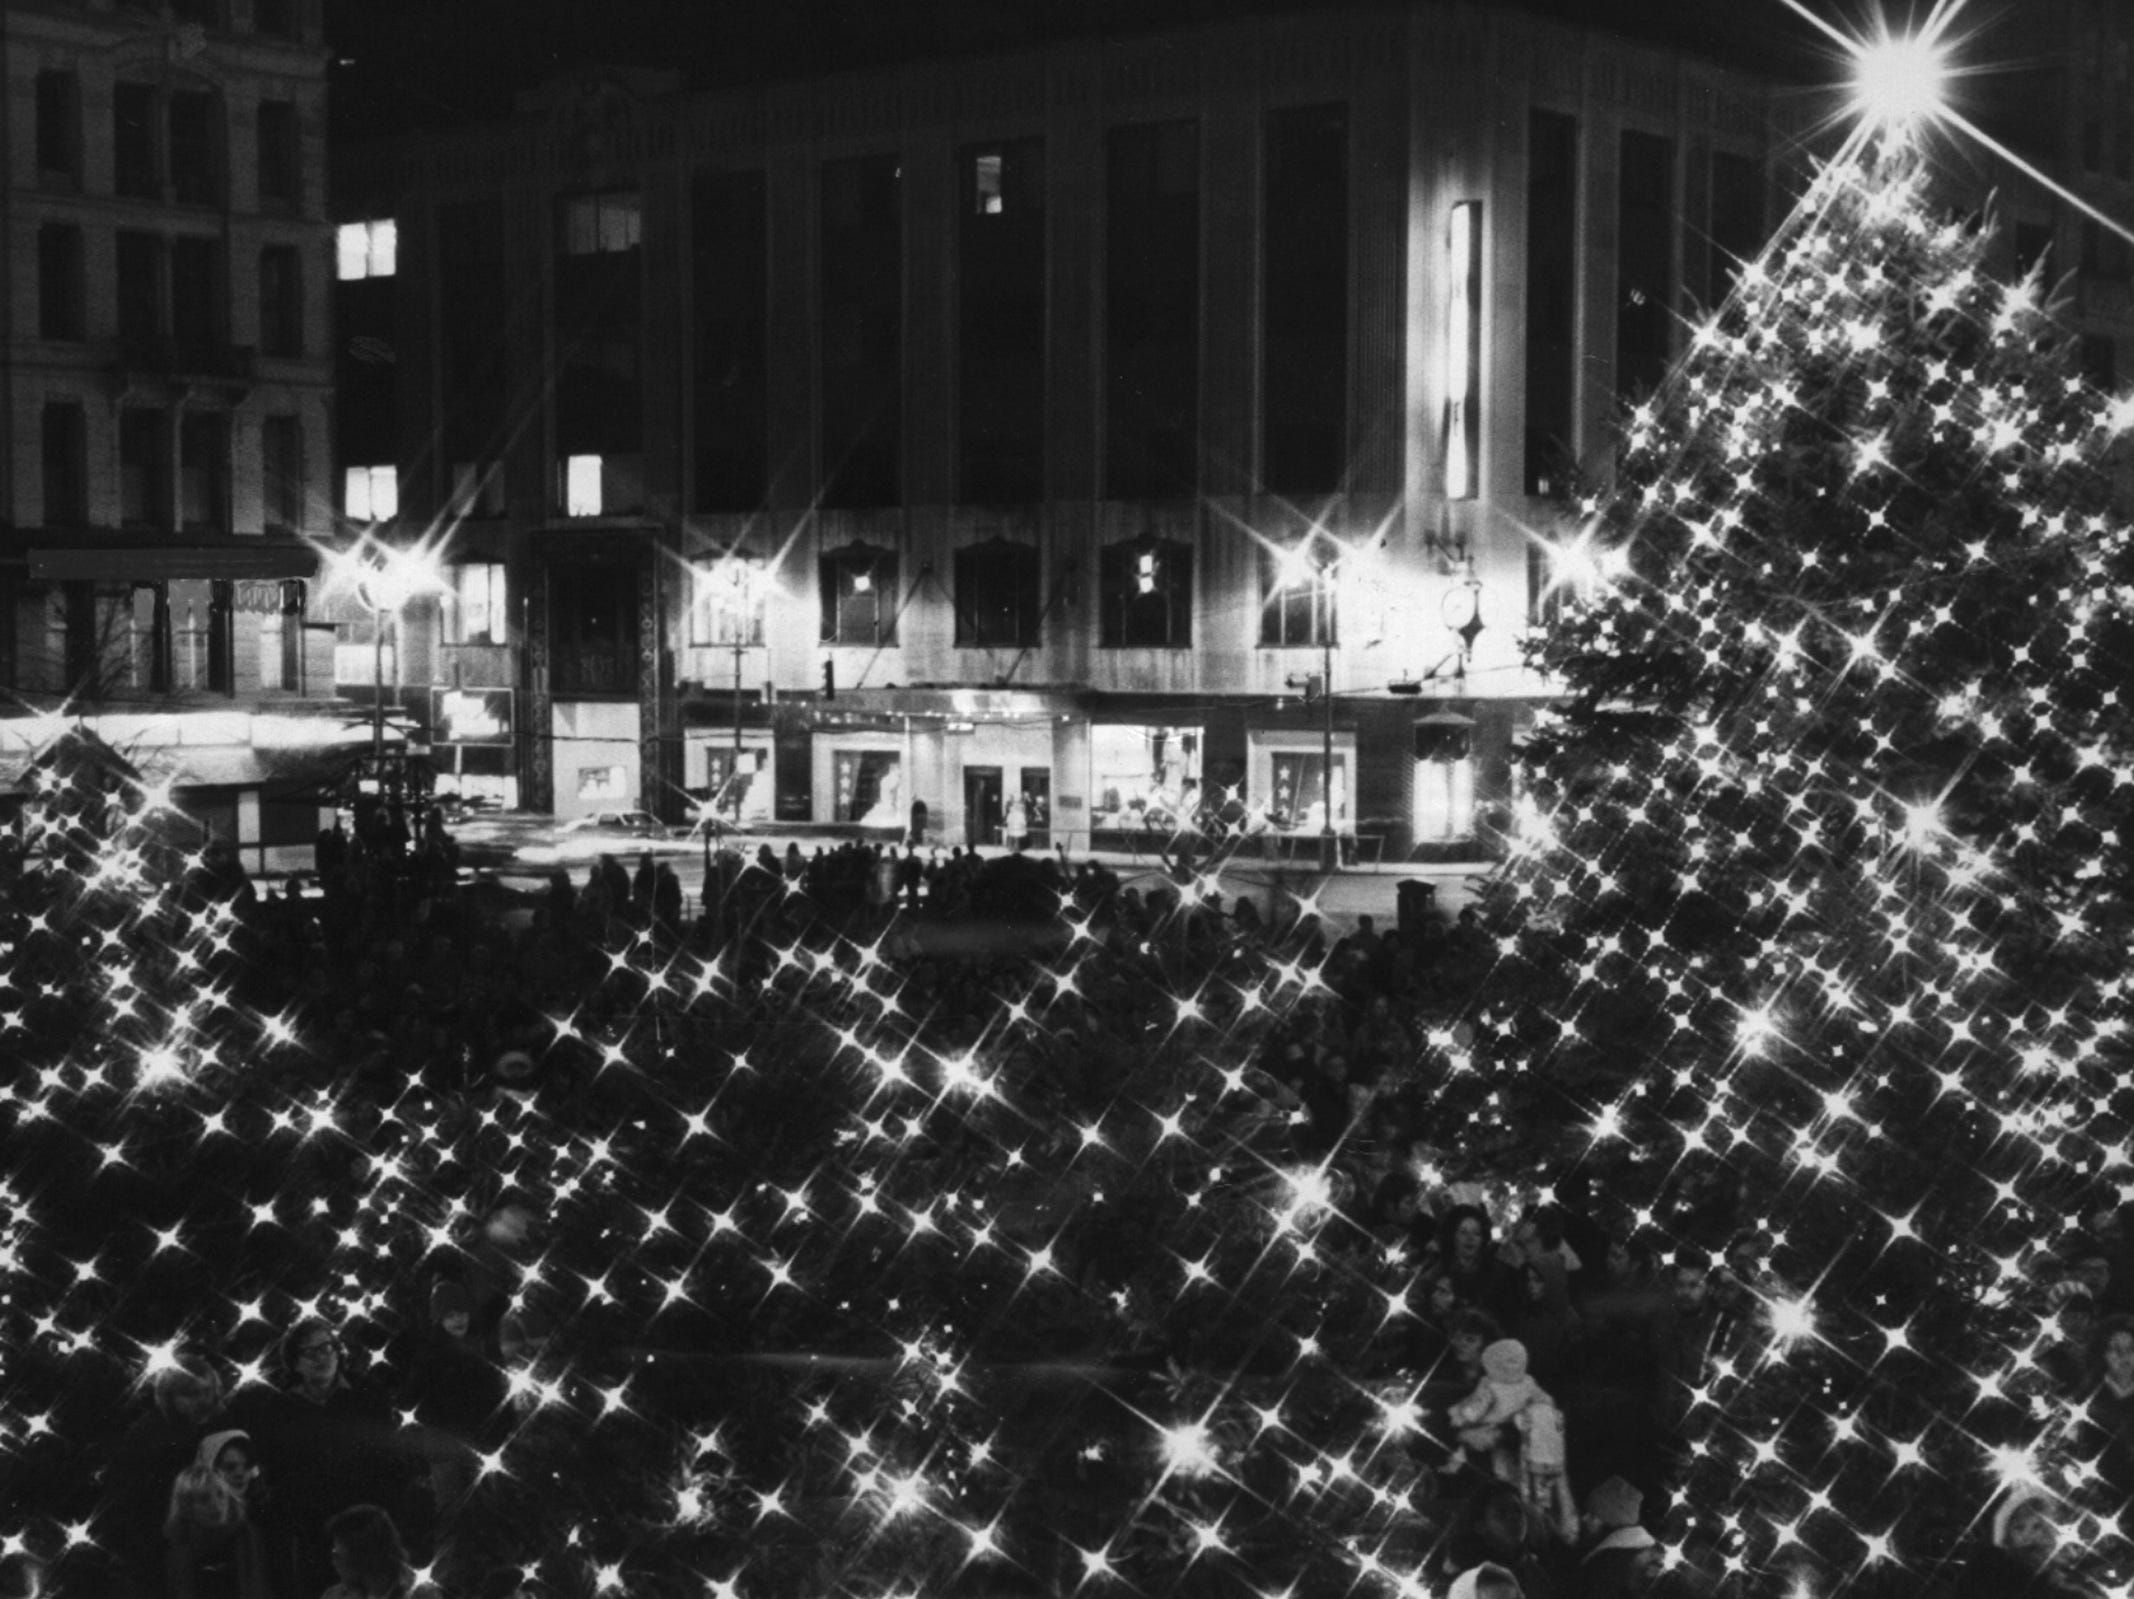 1975: Mayor Theodore M. Berry, accompanied by several Cincinnati Council members, threw the official switch Friday, Nov. 28, and lighted up the Christmas lights strung through the tree branches on Fountain Square.